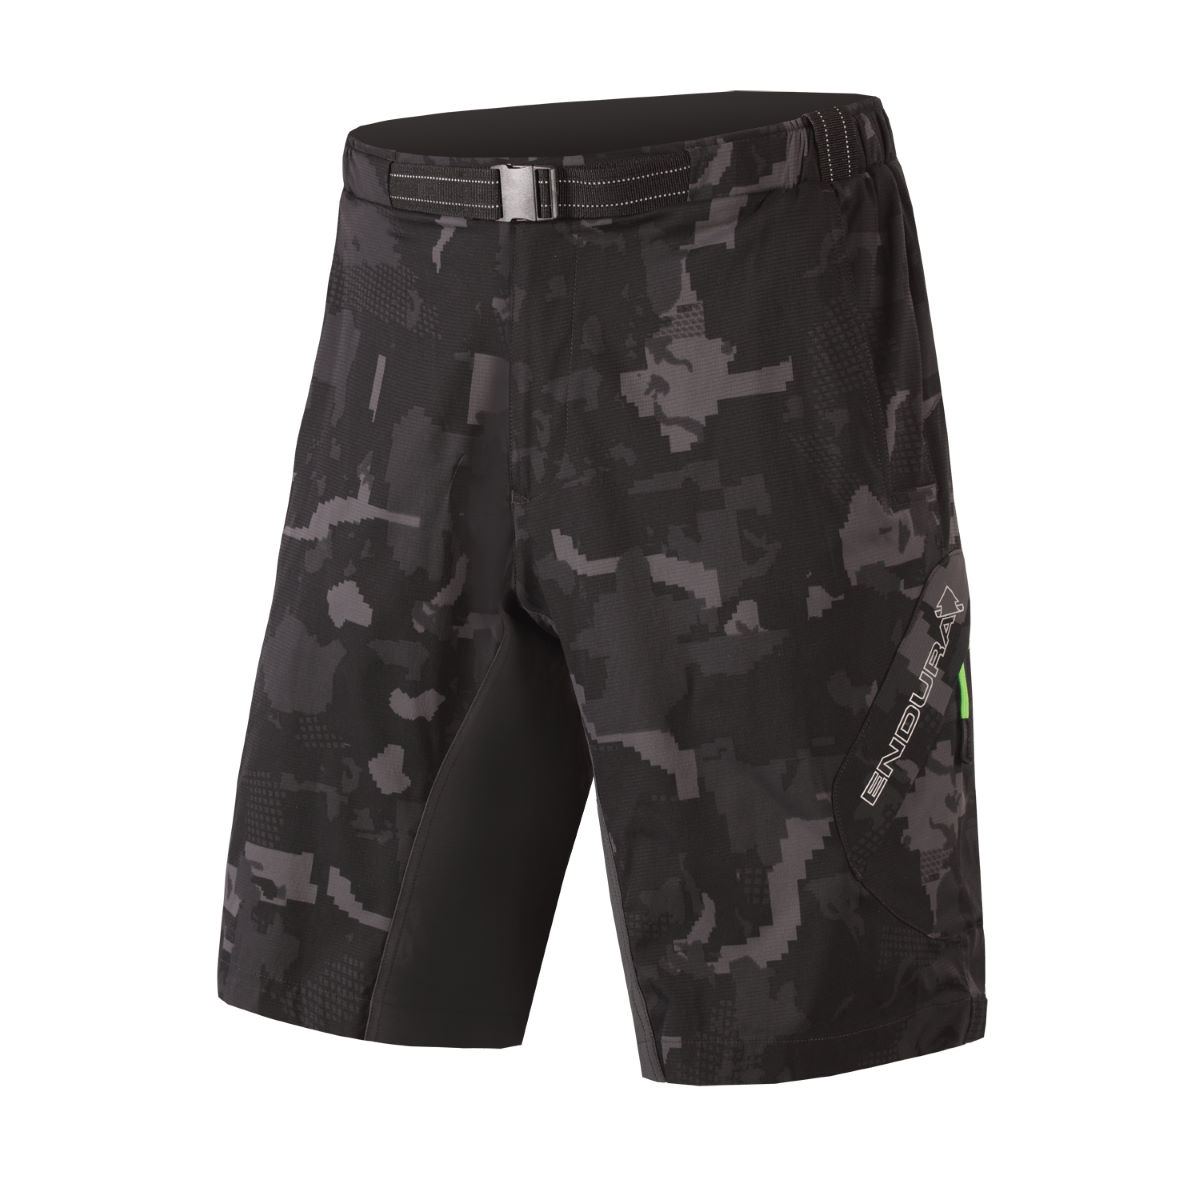 Short Endura Hummvee Lite - Medium Camouflage Shorts VTT